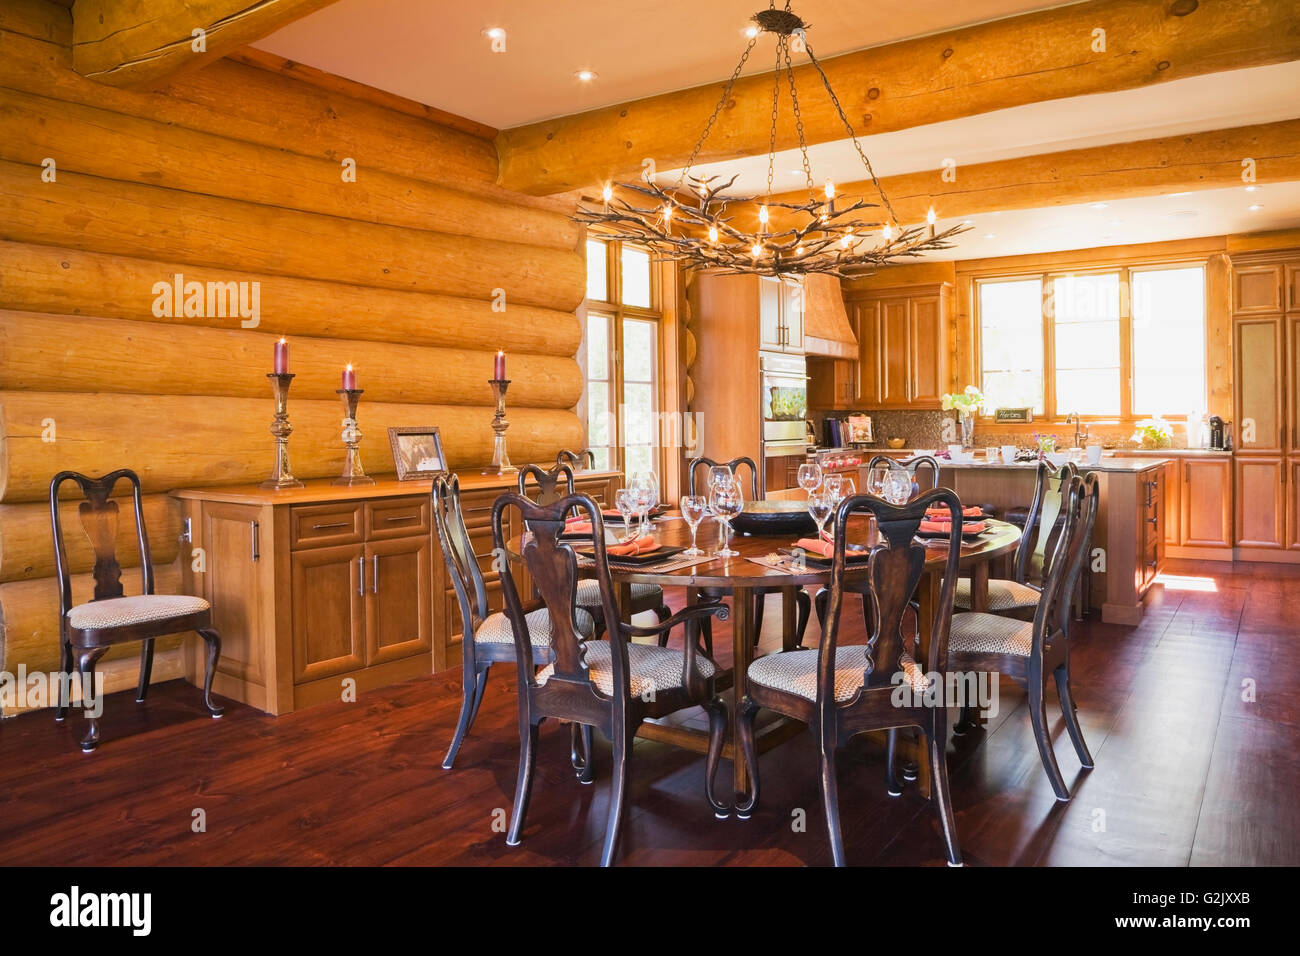 Round Wooden Dining Room Table 8 Chairs Kitchen Inside A Luxurious Cottage Style Log Home Quebec